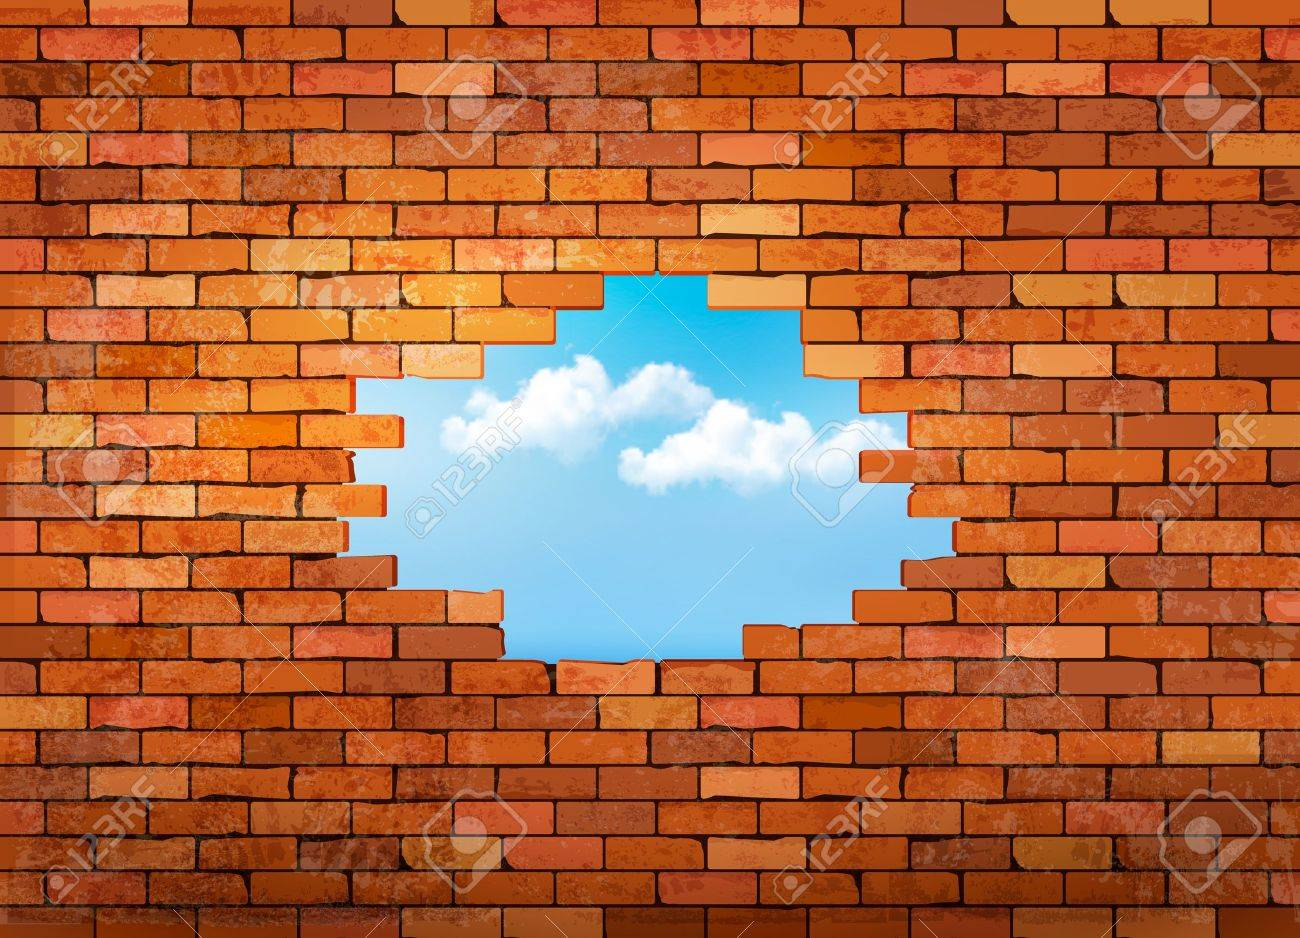 Vintage brick wall background with hole. Vector.